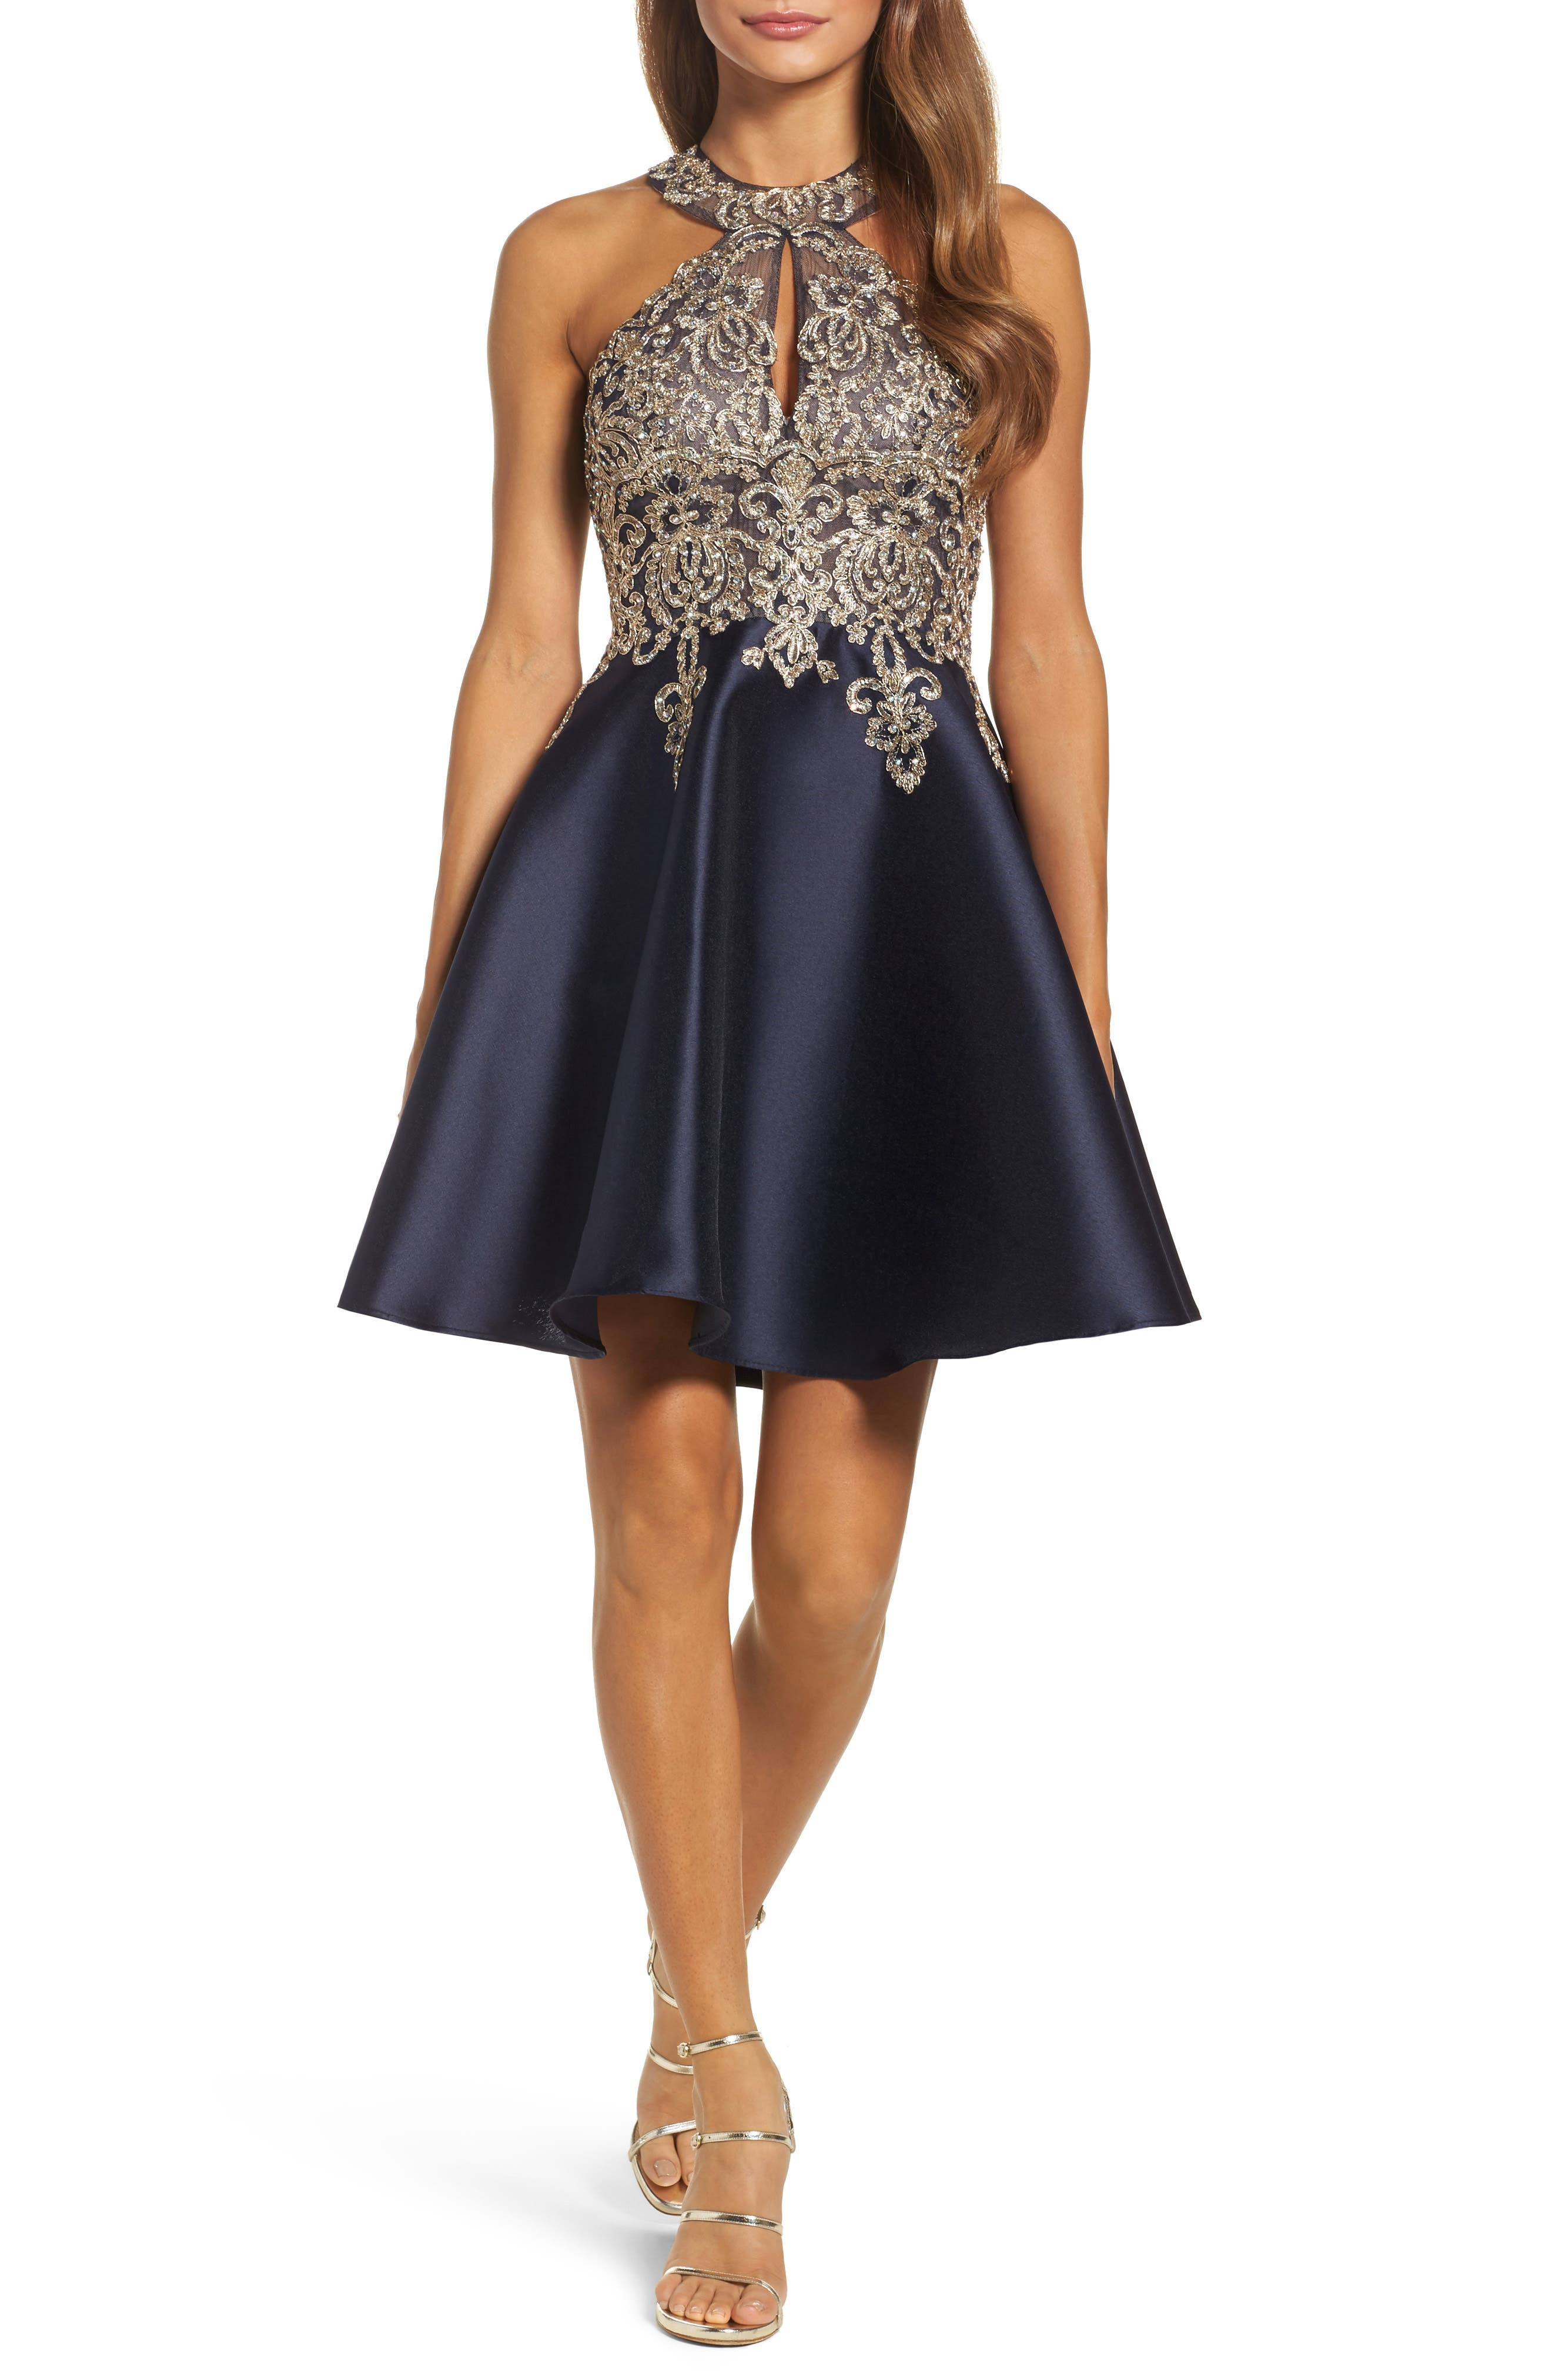 Alternate Image 1 Selected - Xscape Embellished Embroidered Mikado Party Dress